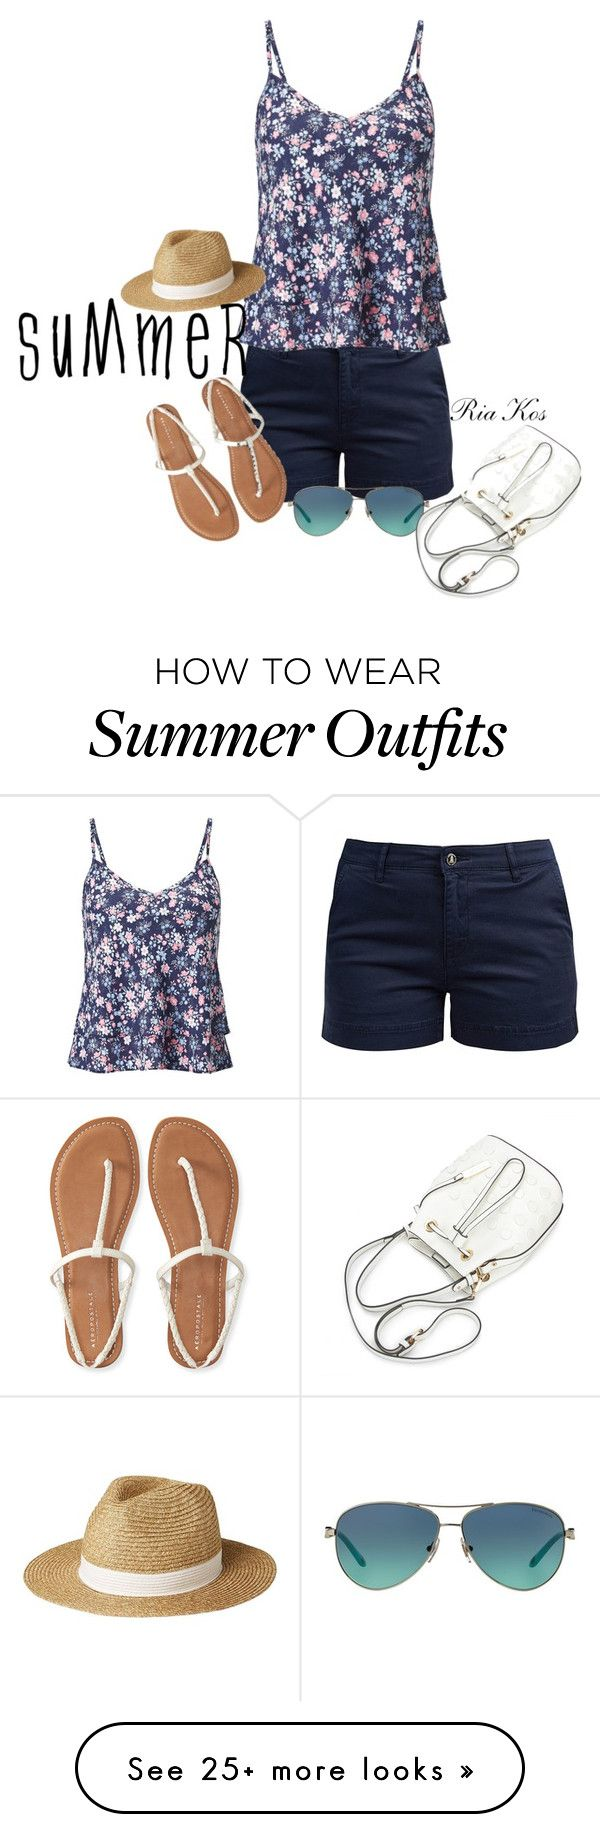 """""""summer outfit"""" by ria-kos on Polyvore featuring Barbour, Miss Selfridge, Aéropostale, Tiffany & Co. and Lipsy"""